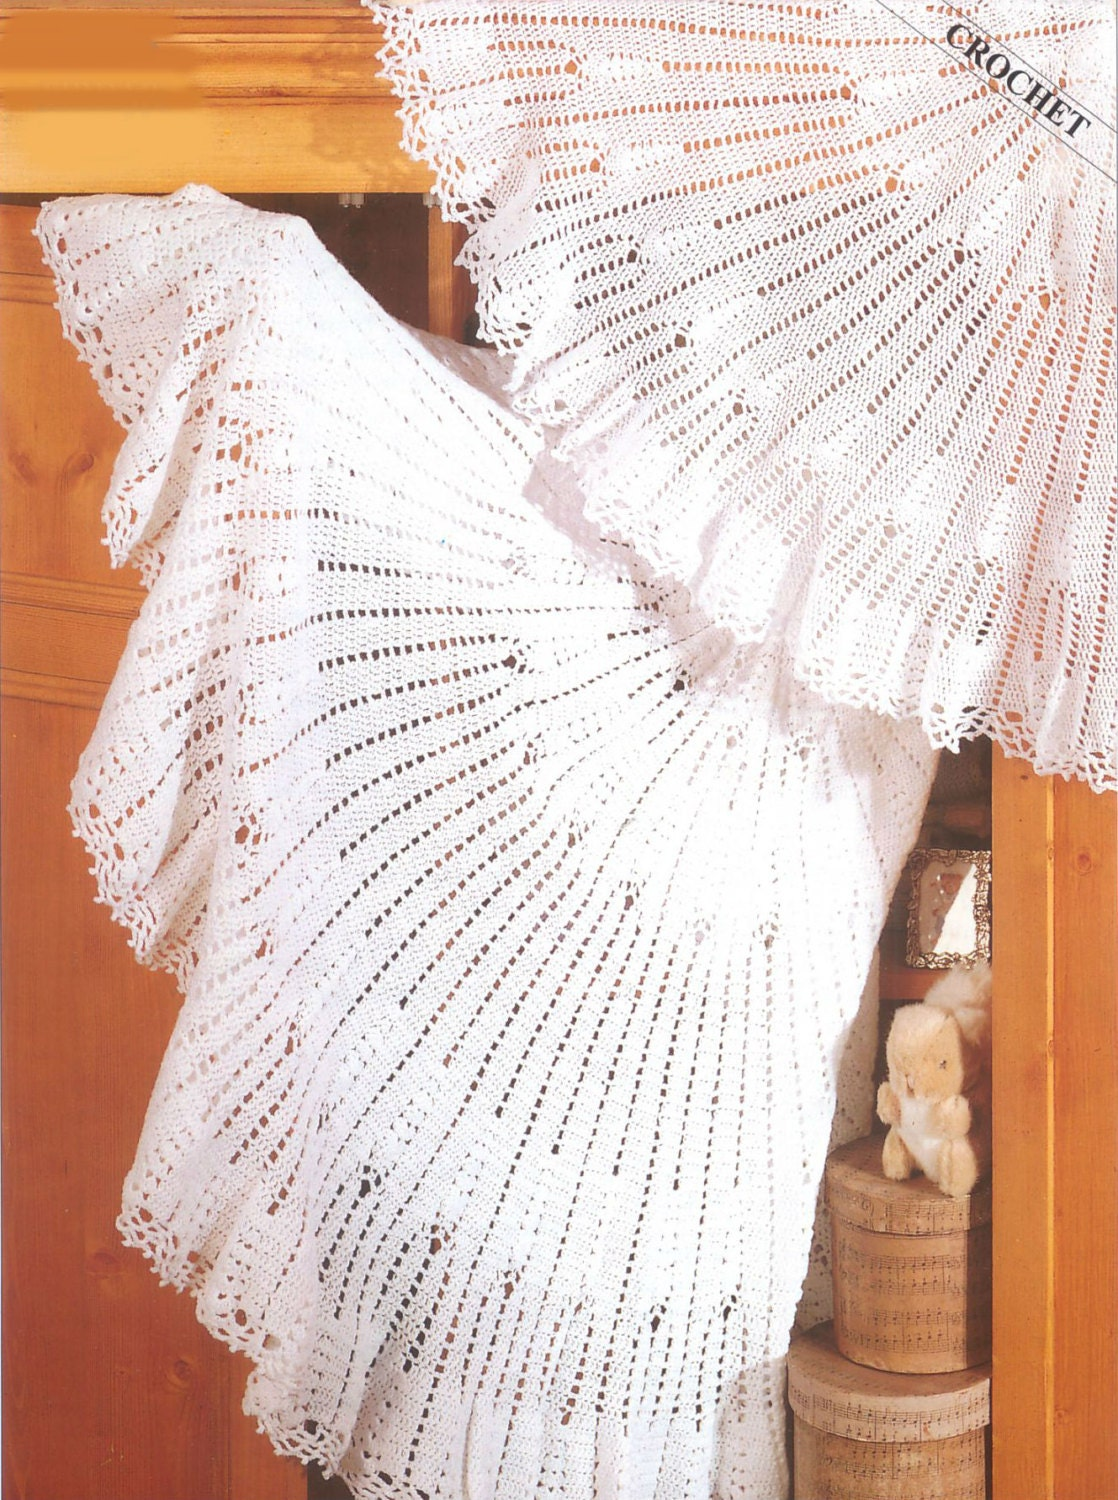 Knitting Pattern For Round Baby Shawl : Crochet Circular Lace Shawl Vintage Pattern round Crochet